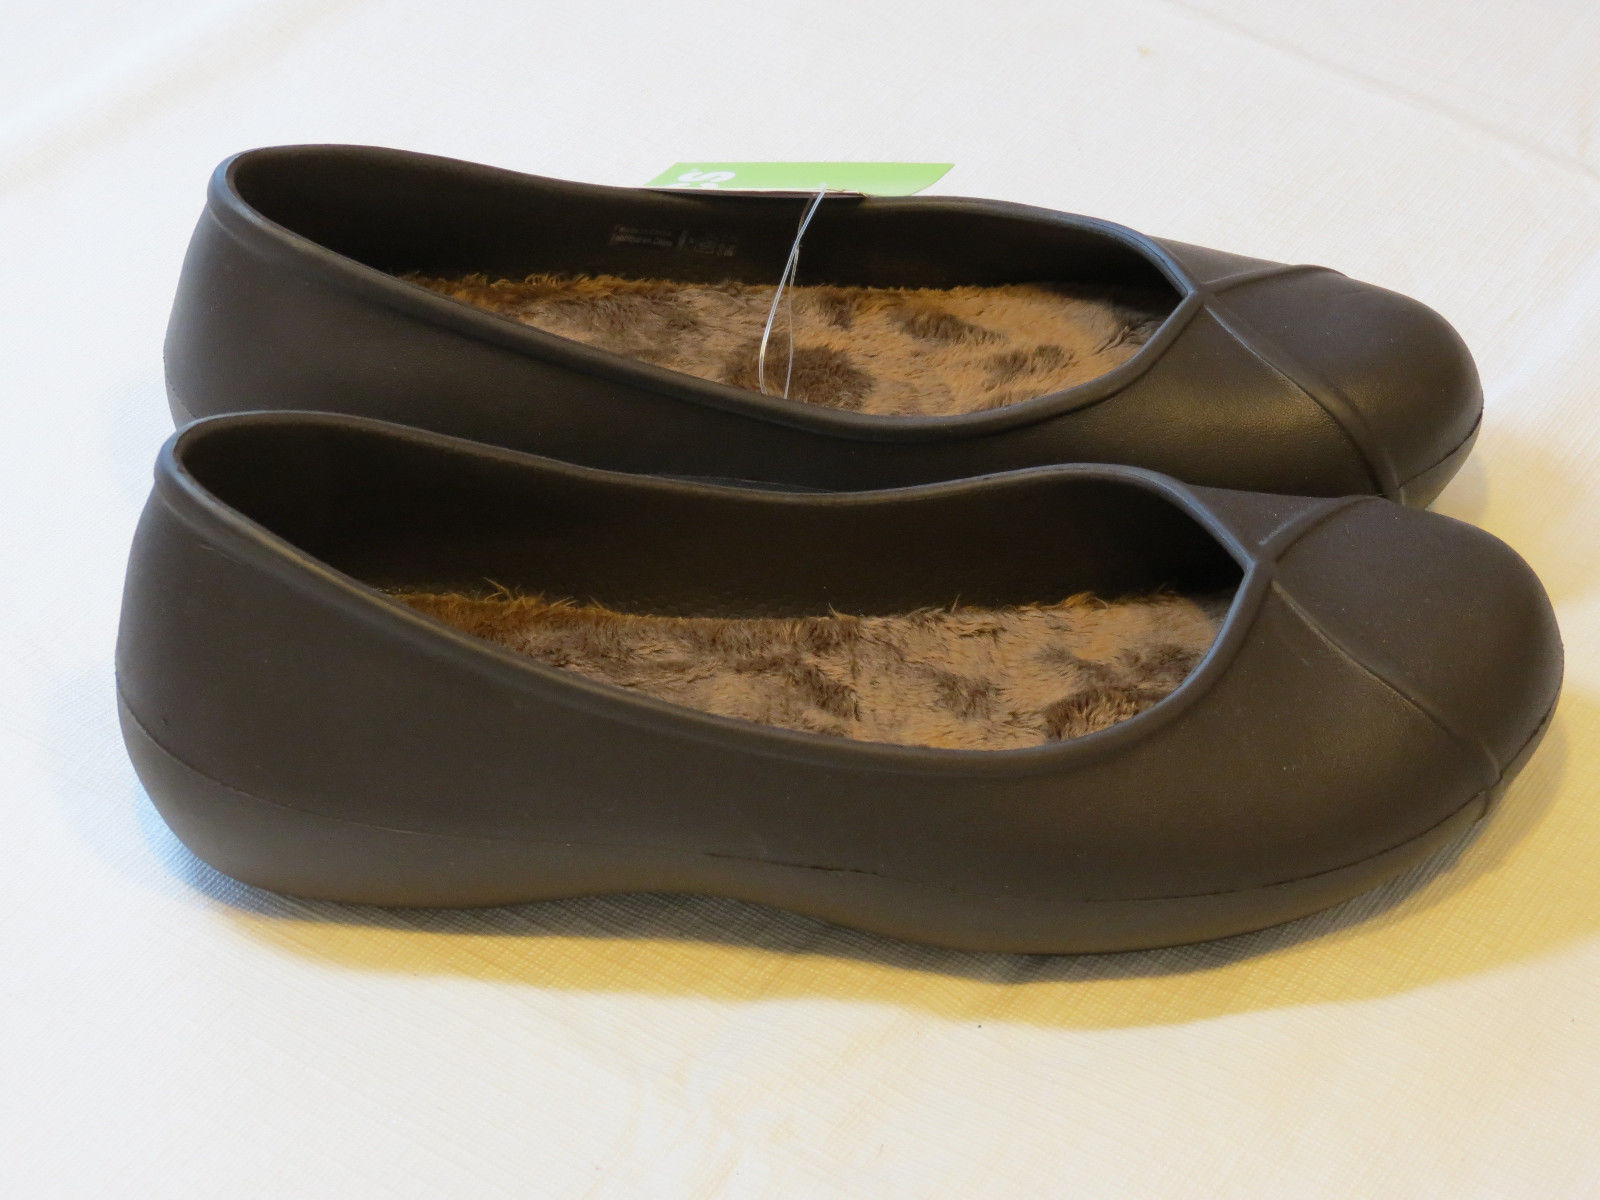 0b700b1ce02ca S l1600. S l1600. Crocs Womens Olivia II Lined Flat Espresso relaxed fit W  7 W7 shoes Dual Comfort ...